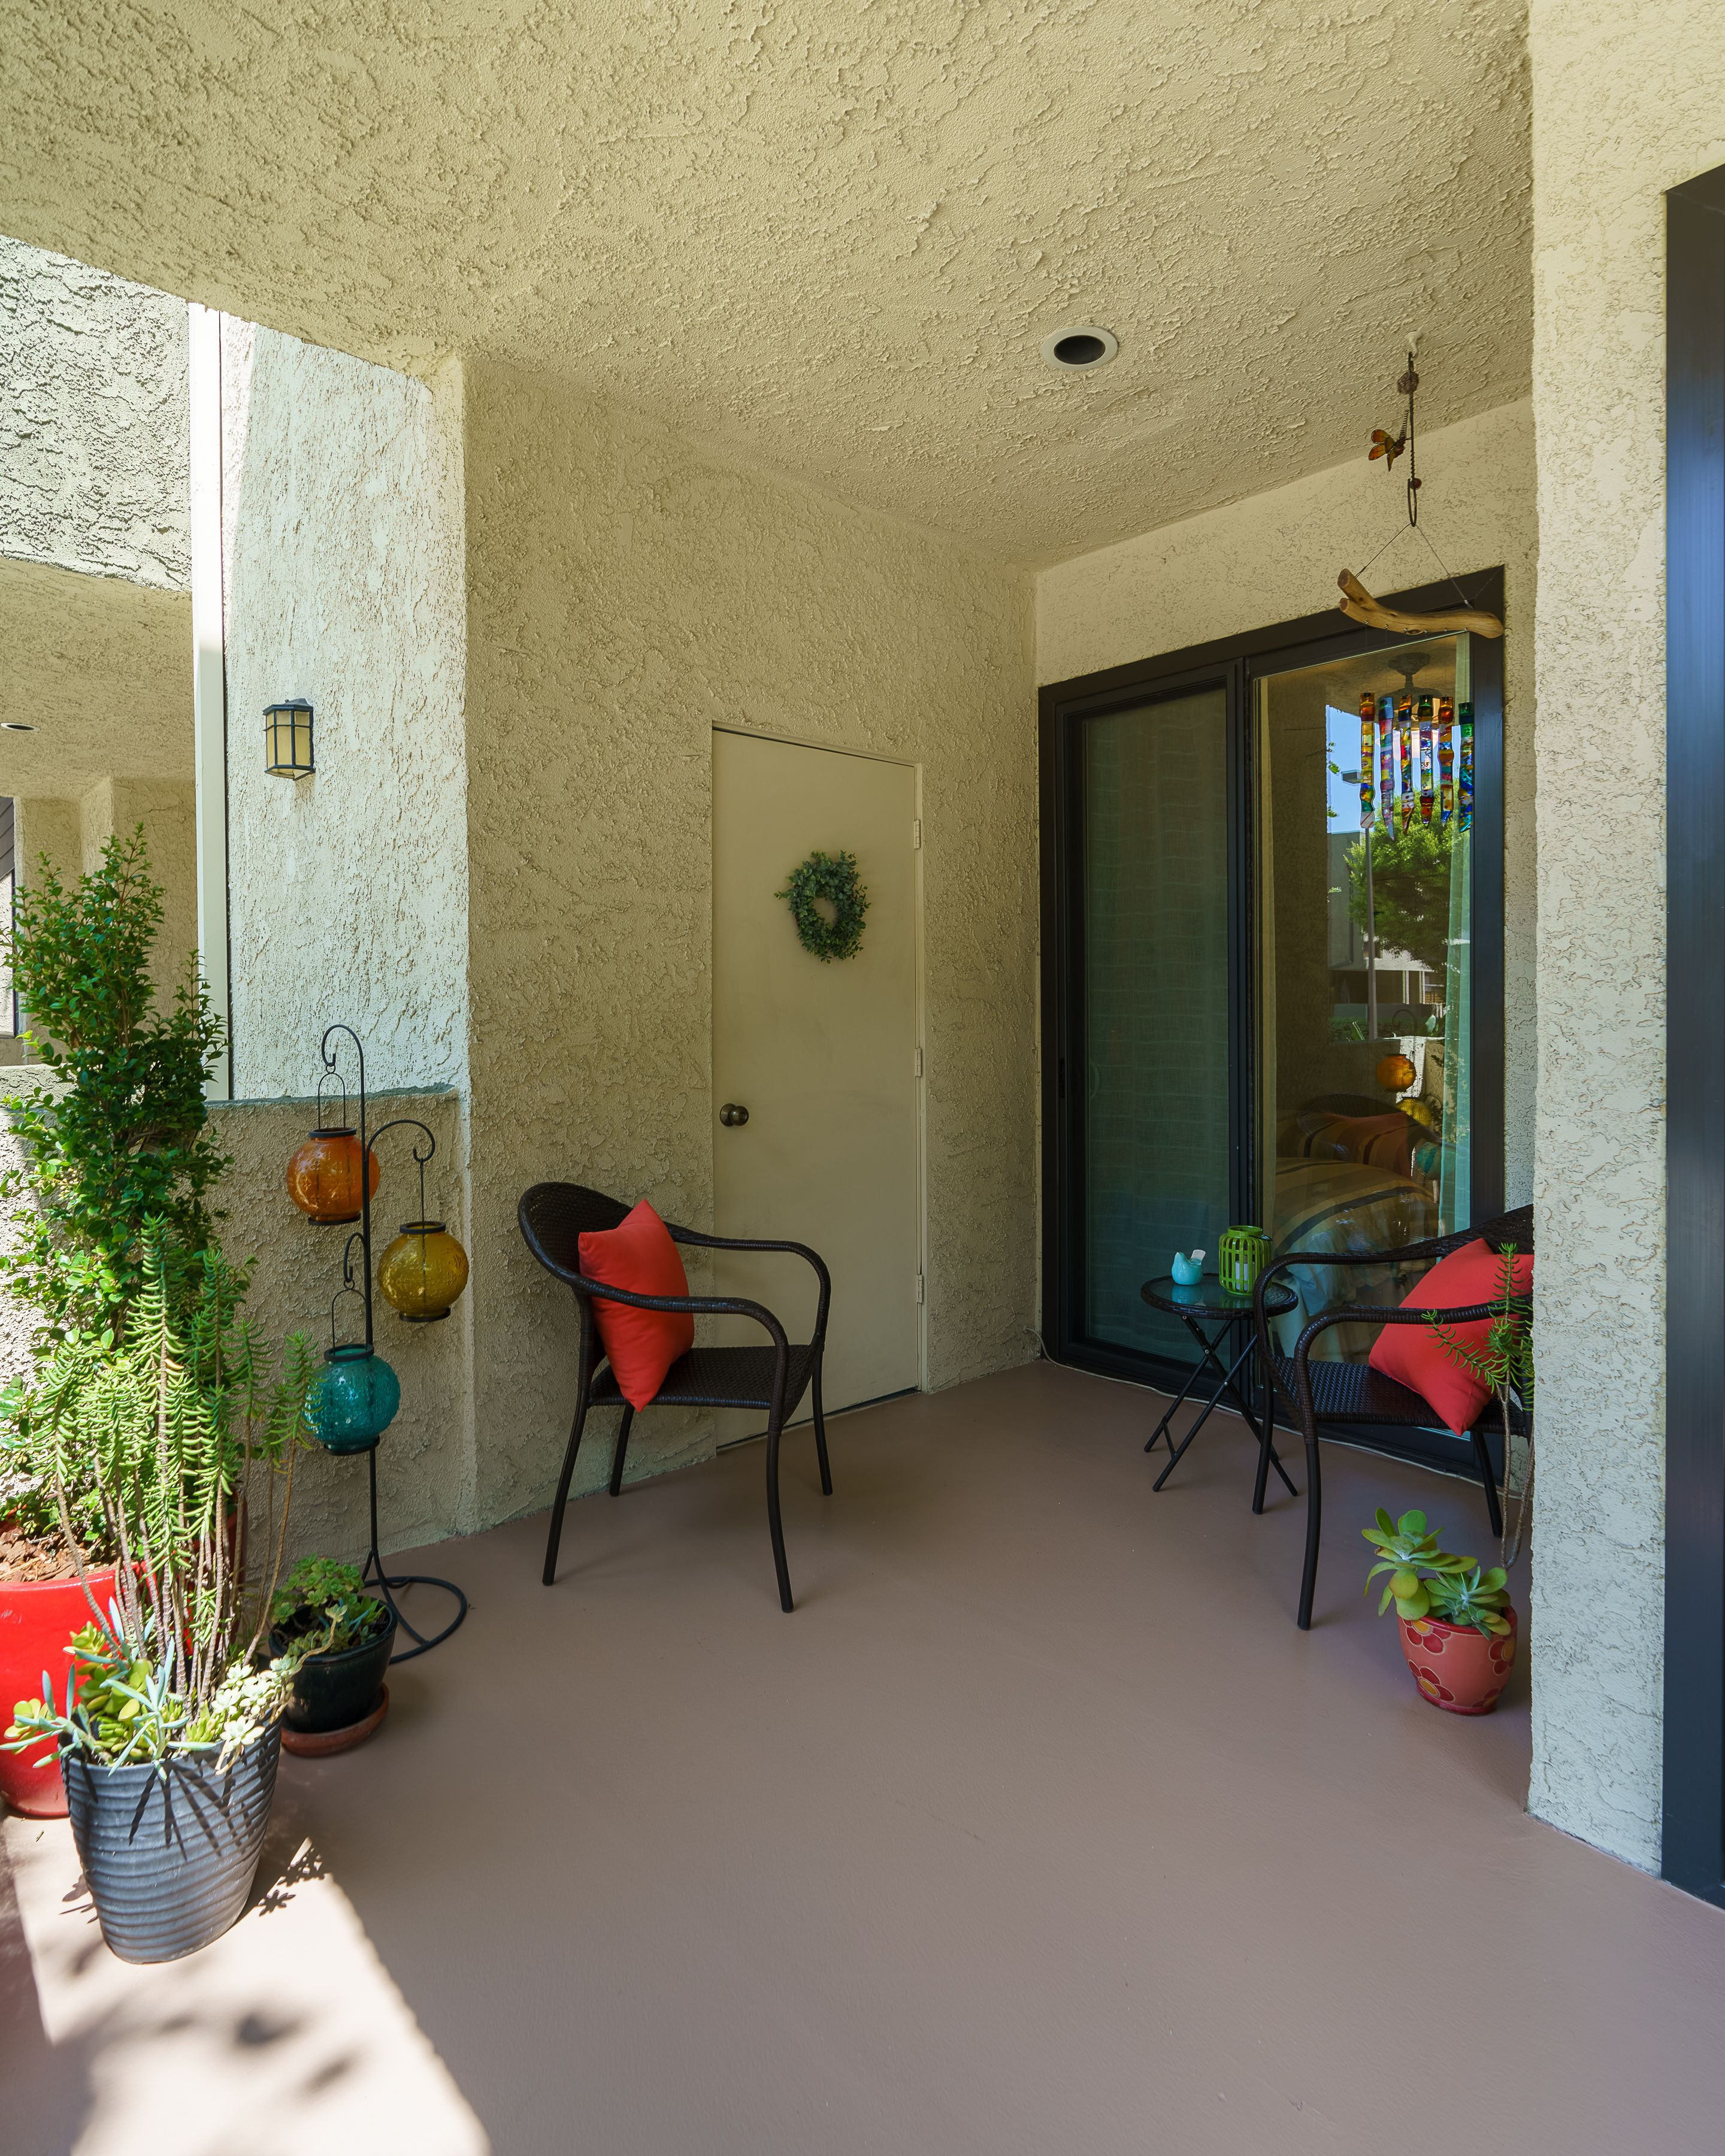 Turnkey Pasadena Condo In 2020 Two Bedroom Home Home Decor